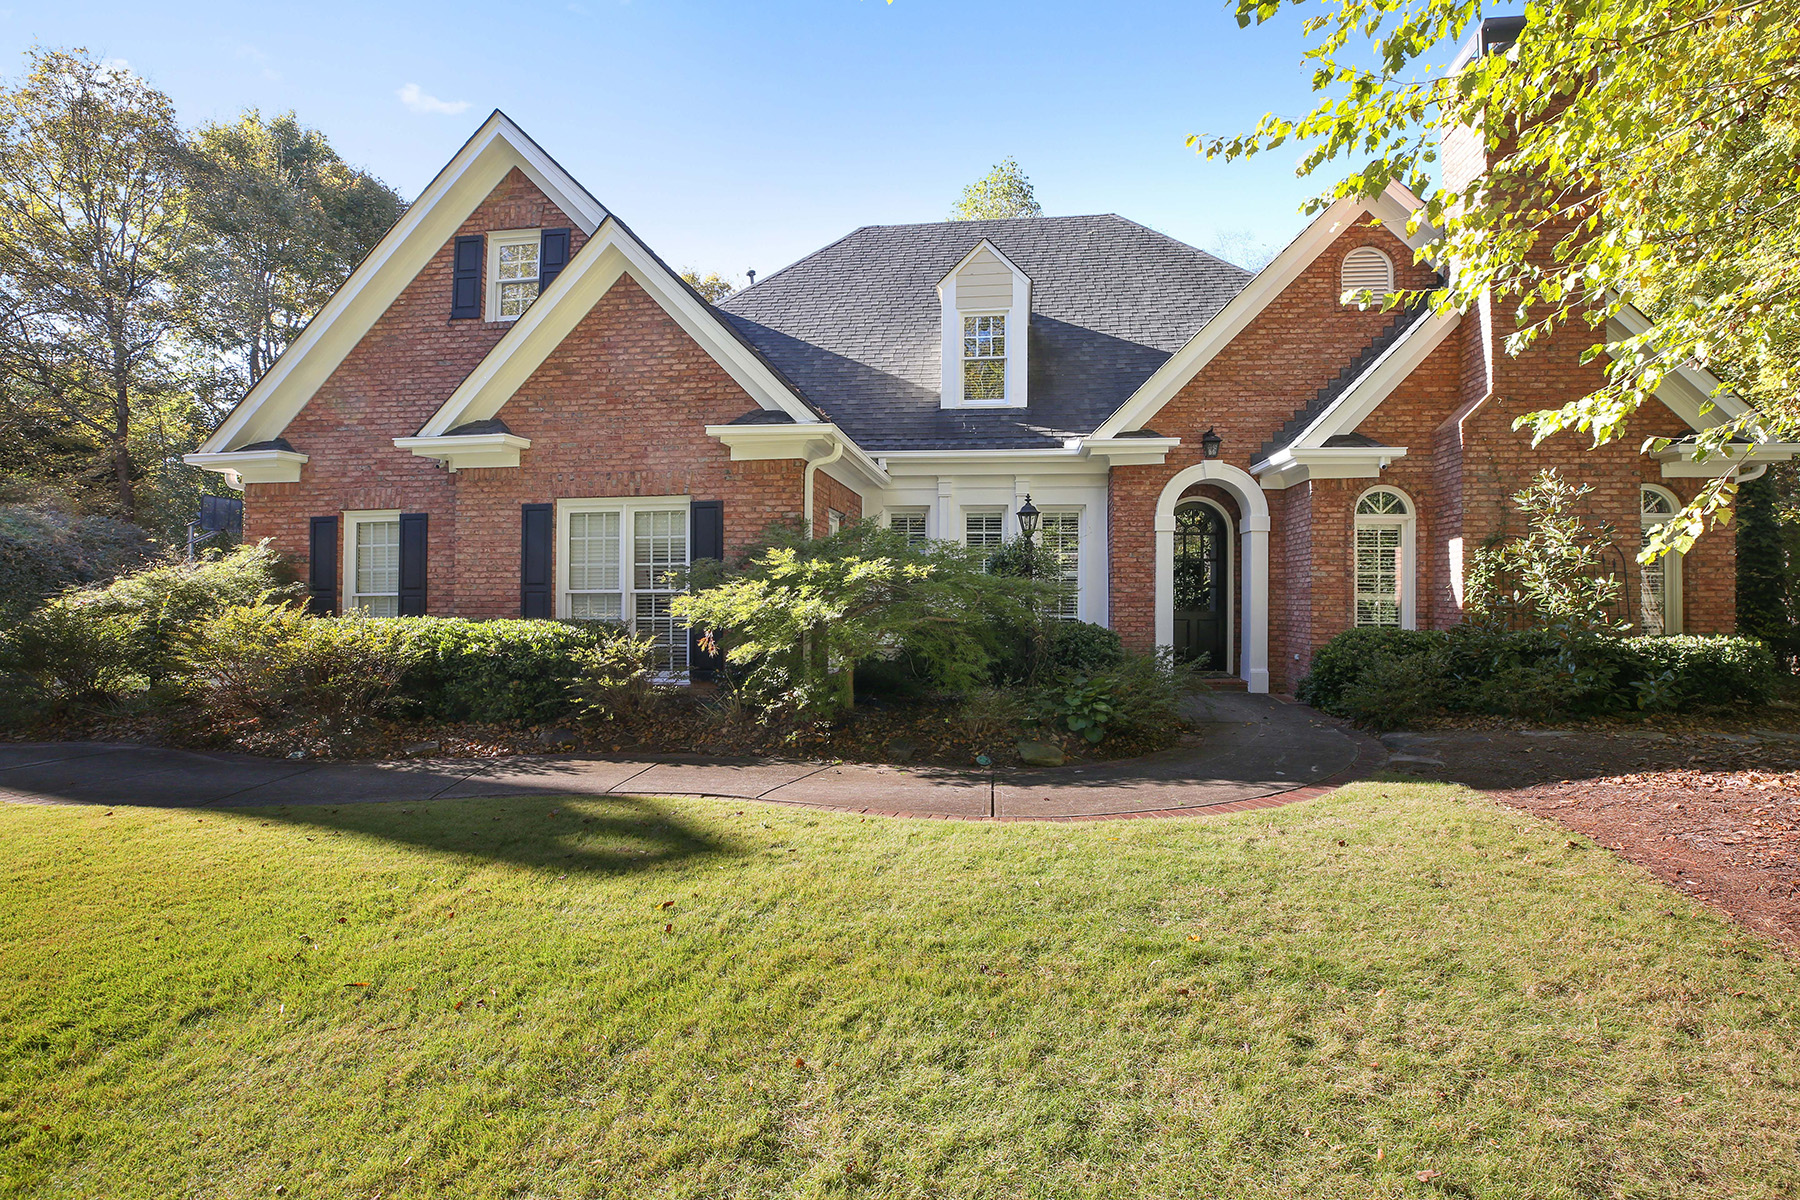 Single Family Home for Sale at Beautifully Renovated Brick Ranch In Popular Amberfield 3920 Royal Pennon Court Peachtree Corners, Georgia 30092 United States